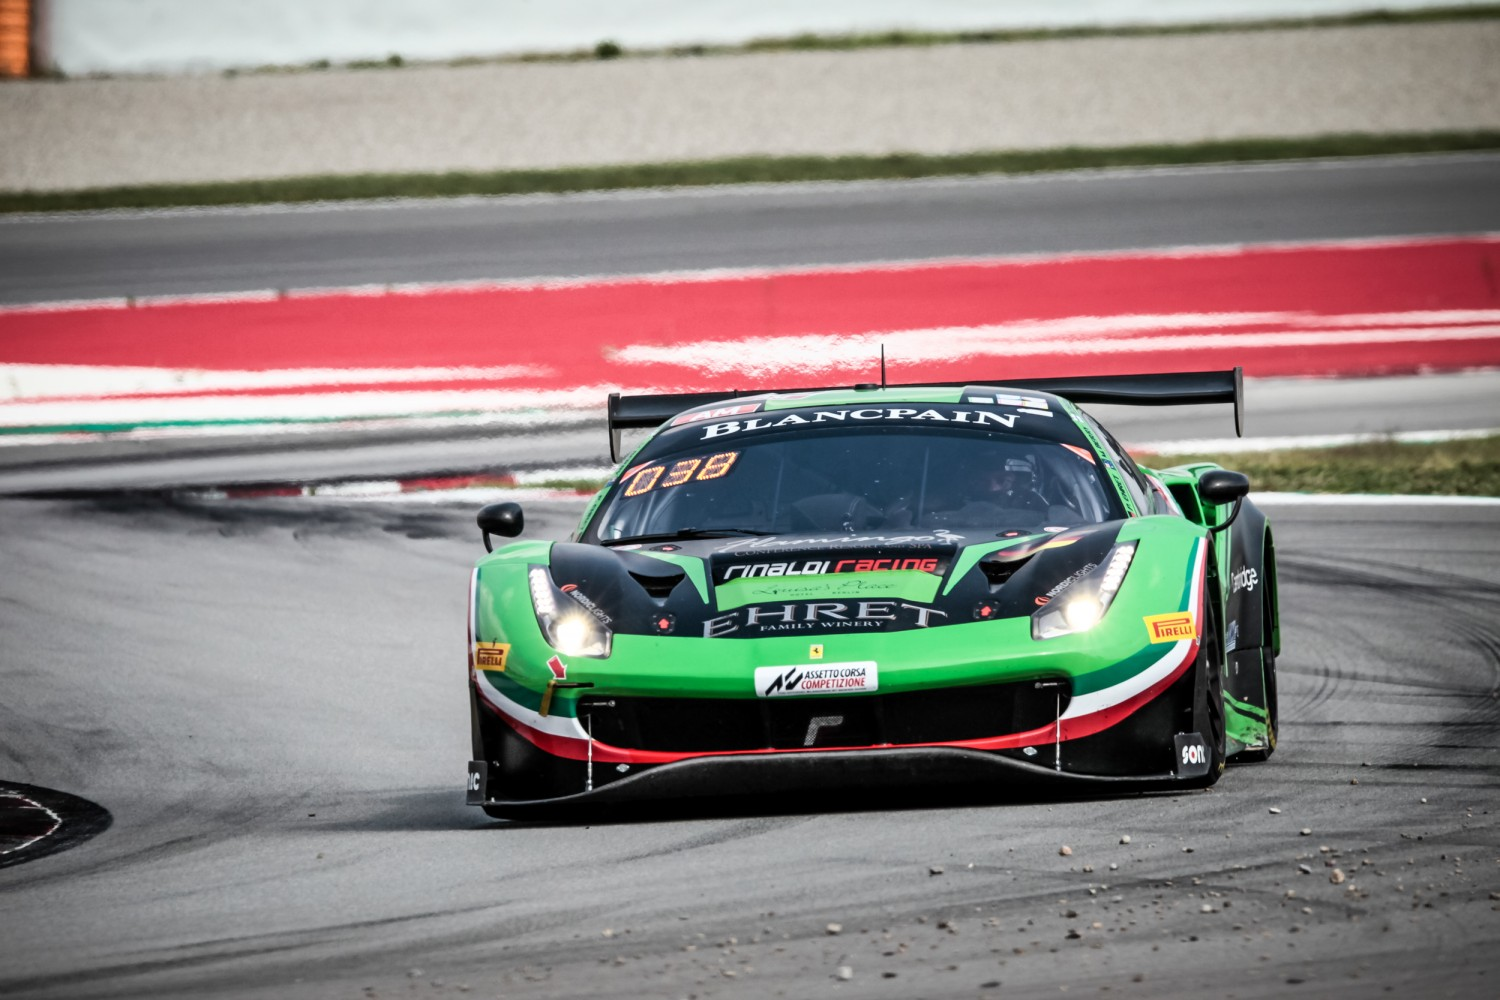 #488 Rinaldi Racing DEU Ferrari 488 GT3 Pierre Ehret DEU Martin Berry AUS Rory Penttinen FIN Am Cup, Friday Sessions  | SRO / Patrick Hecq Photography